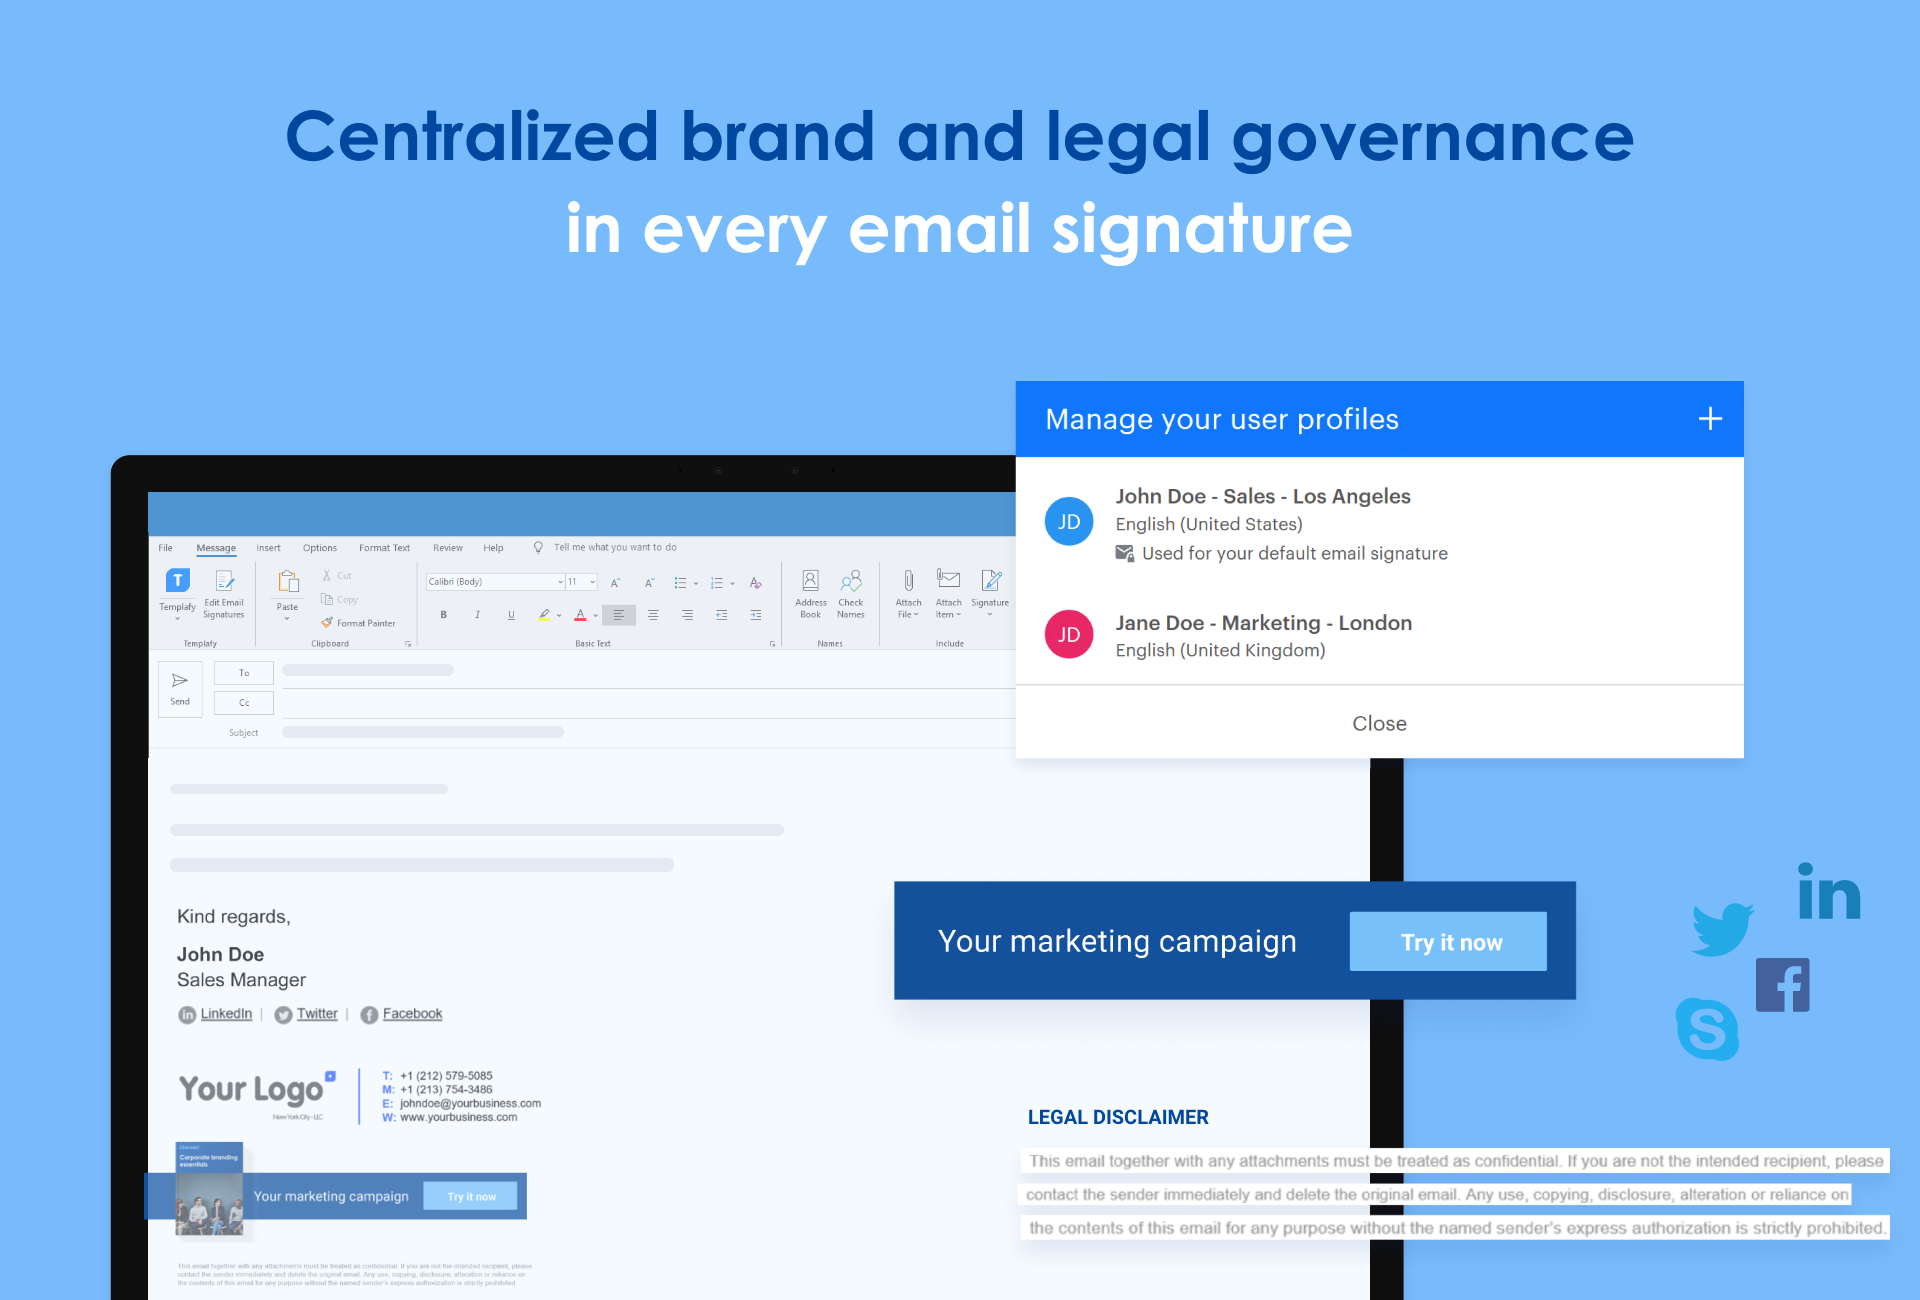 The Email Signature Manager is a cloud-based solution that operates within your enterprise security walls and provides central management of all your enterprise's email signatures including email campaigns.